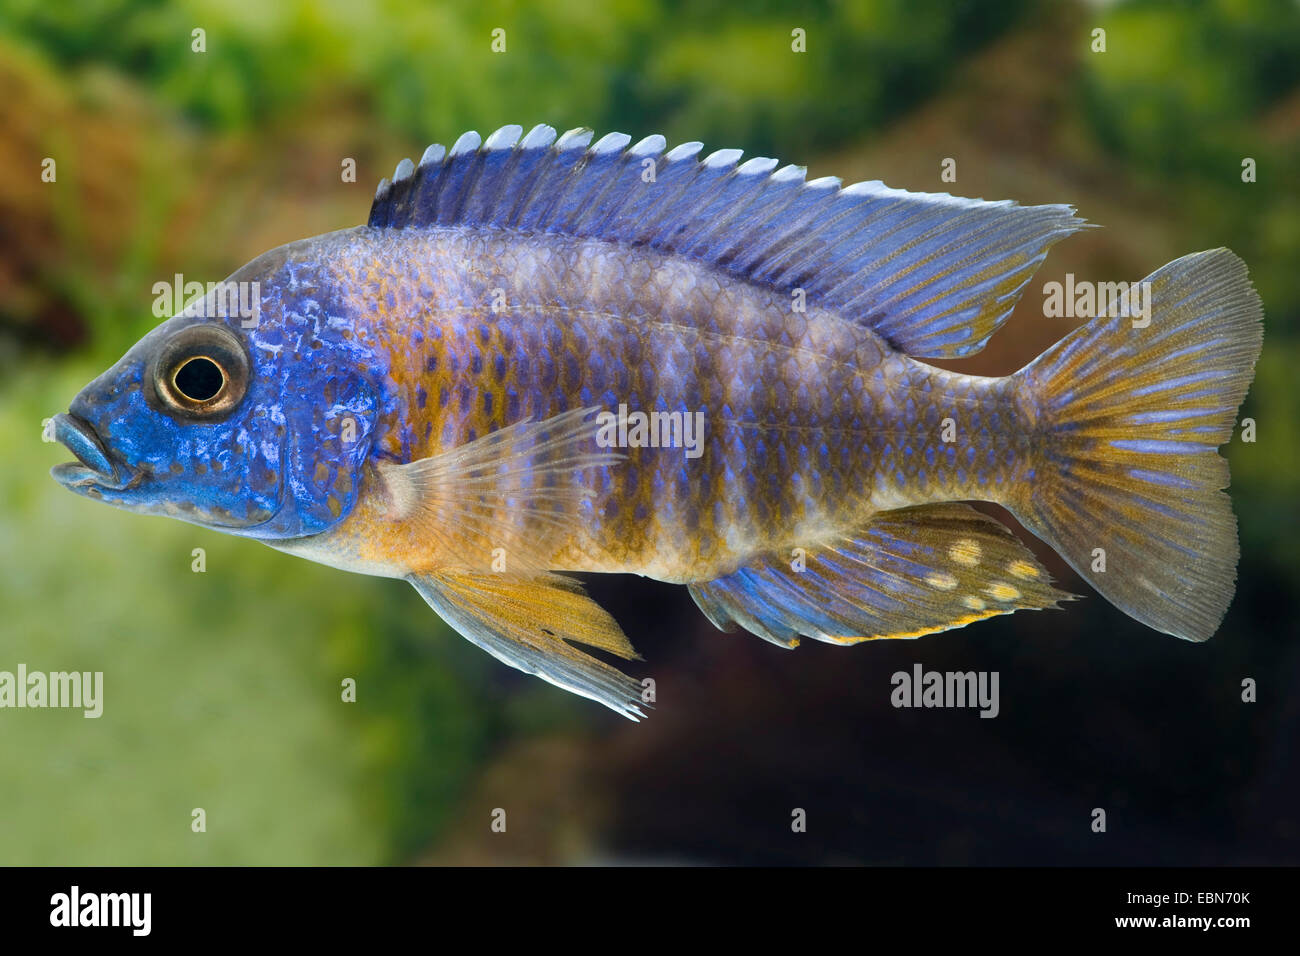 Red-shoulder Malawi peacock cichlid, Aulonocara Fort Maguire (Aulonocara hansbaenschi), breed Chiloelo - Stock Image